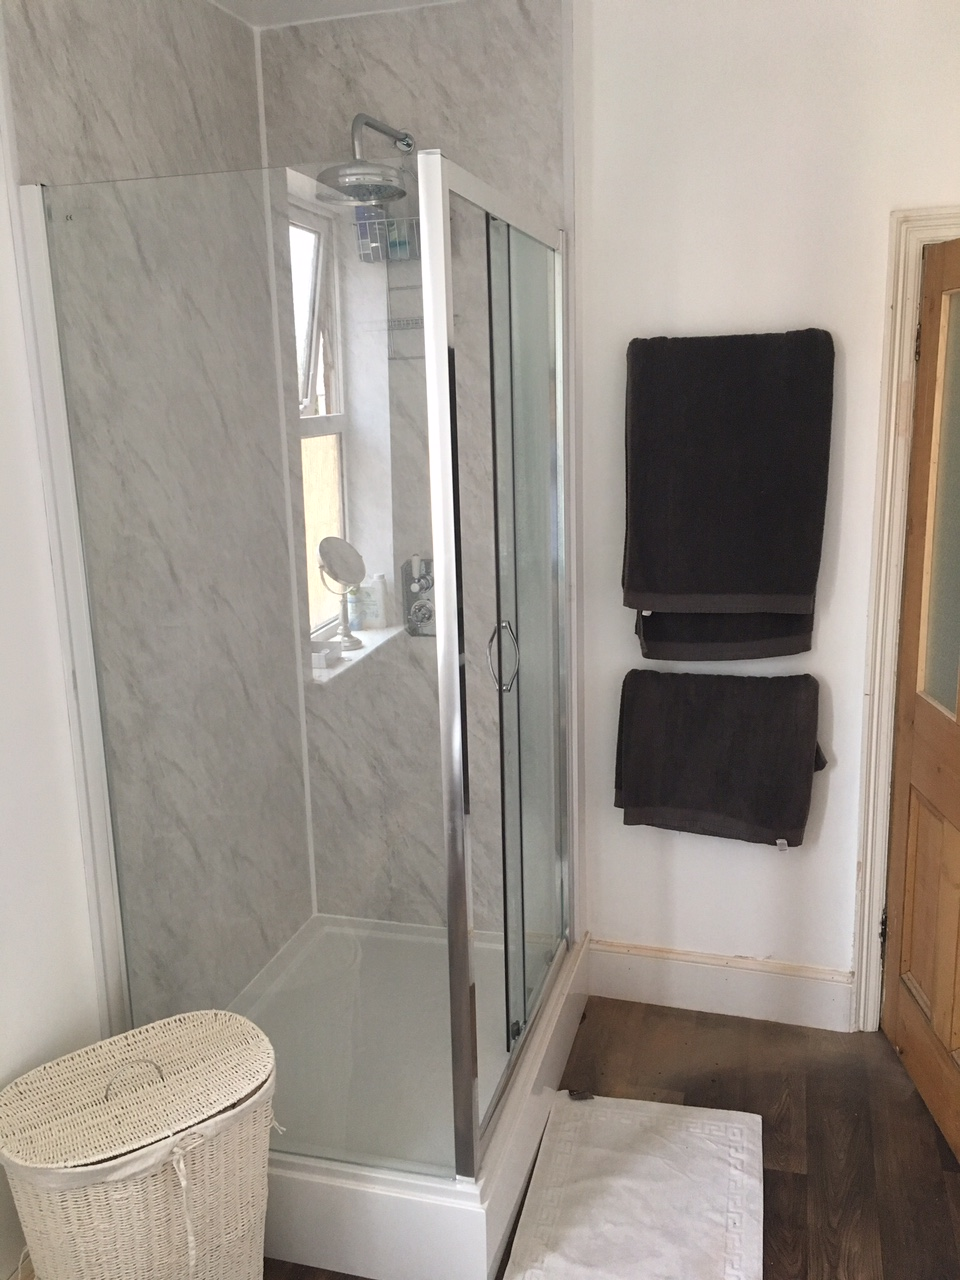 image1 - Customer's Shower Installation